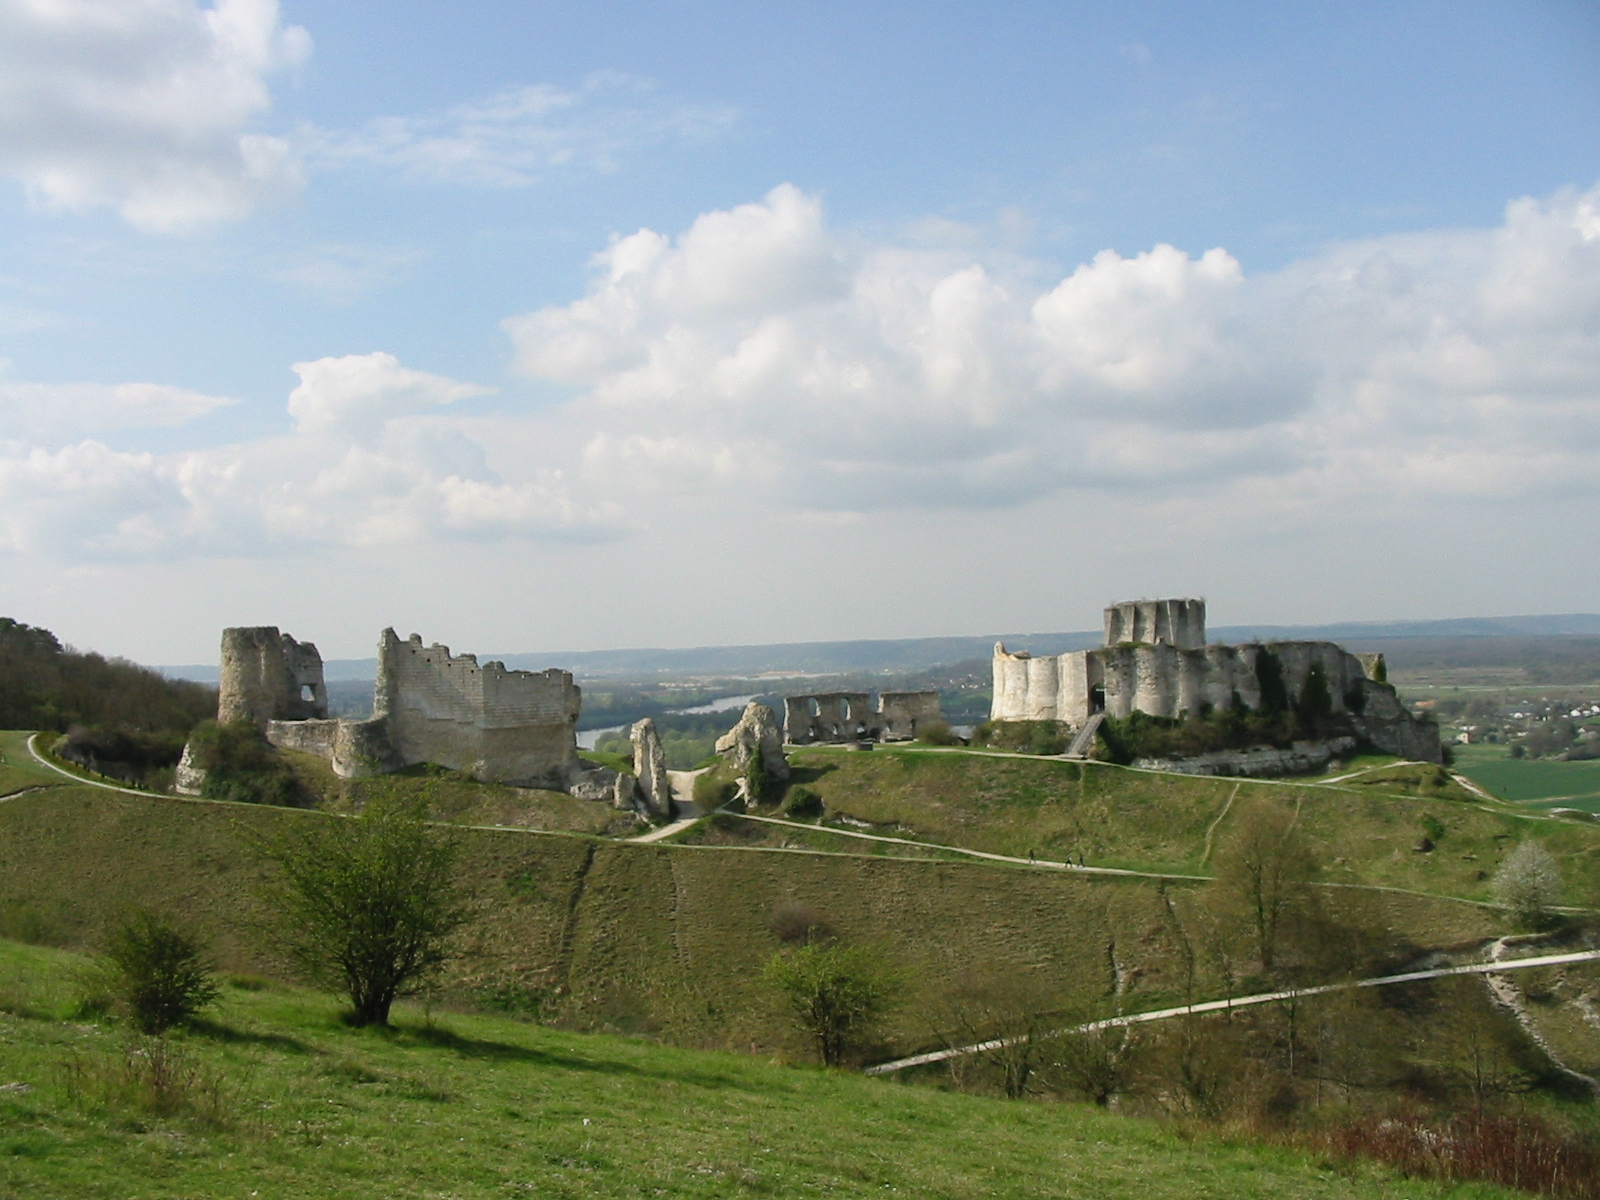 Gaillard France  City new picture : Chateau gaillard France, Normandy Wikimedia Commons